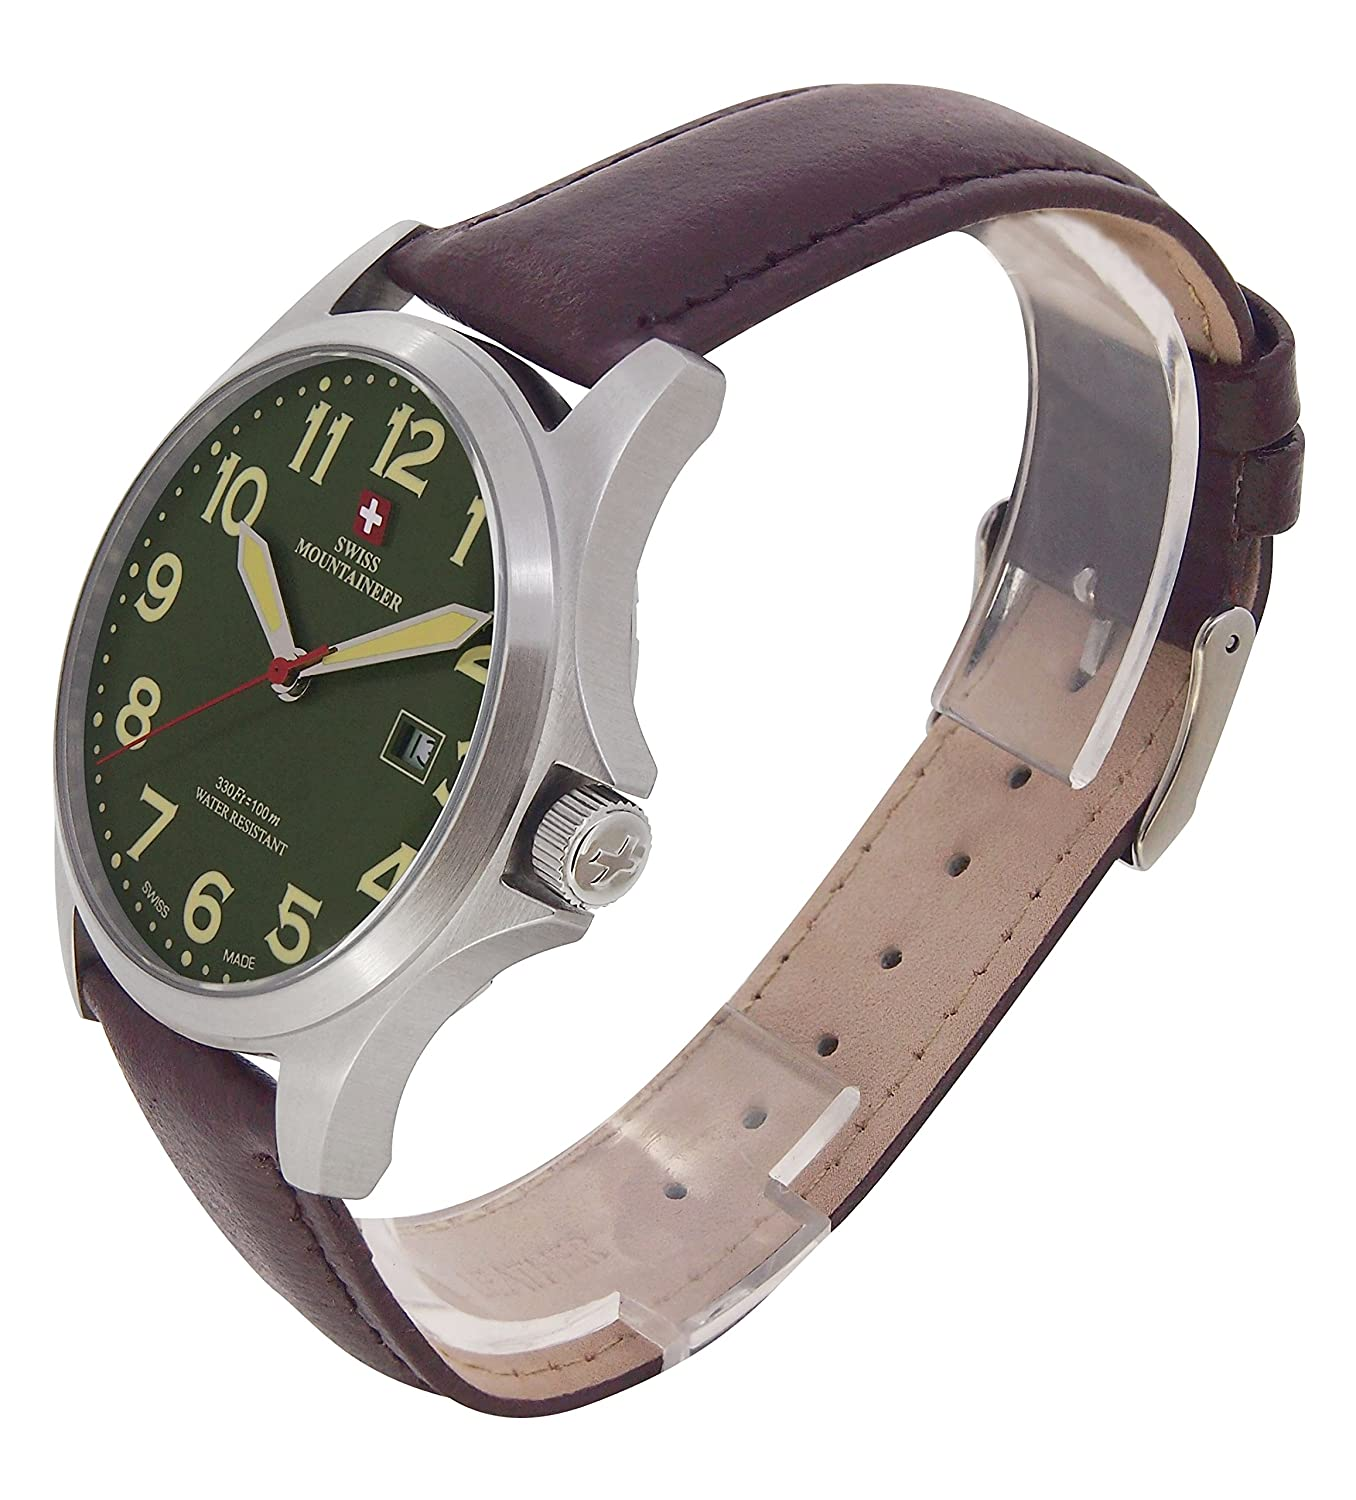 Amazon.com: Swiss Mountaineer Mens Swiss Watch Brown Leather Band Large Green Easy Read Dial Date Display SML8032: Swiss Mountaineer: Watches